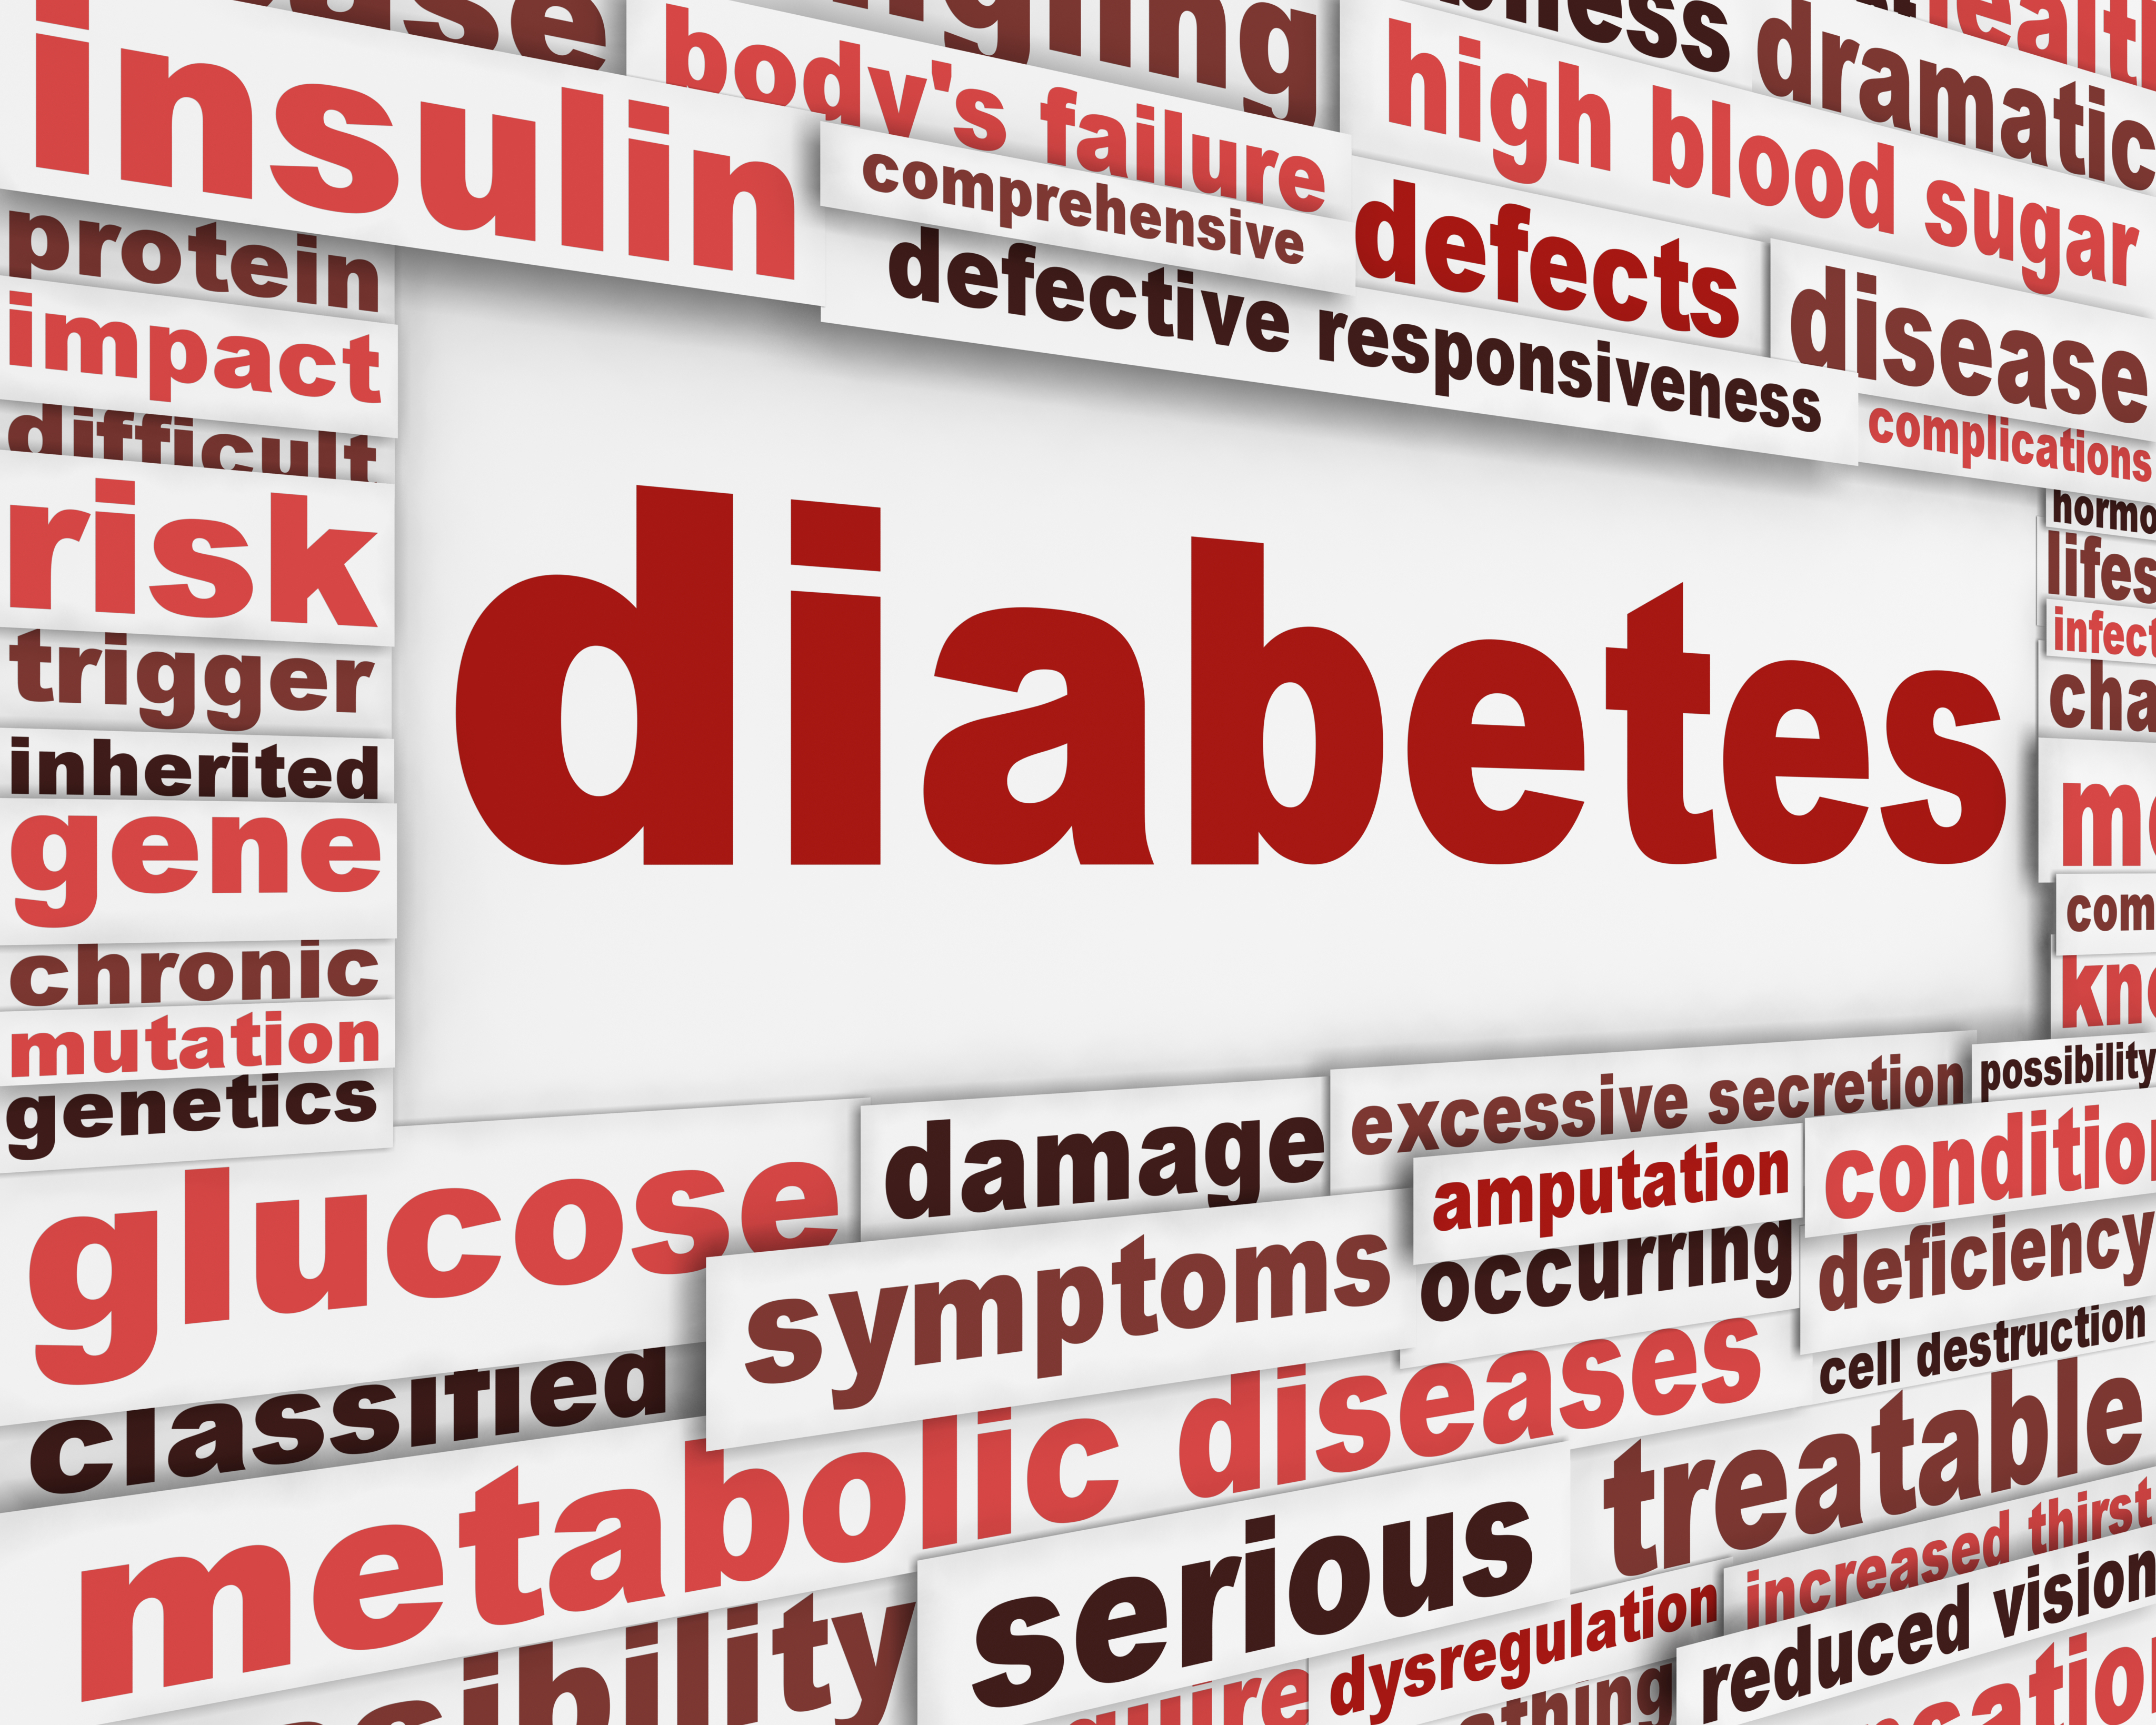 Does type 2 diabetes cause amputation